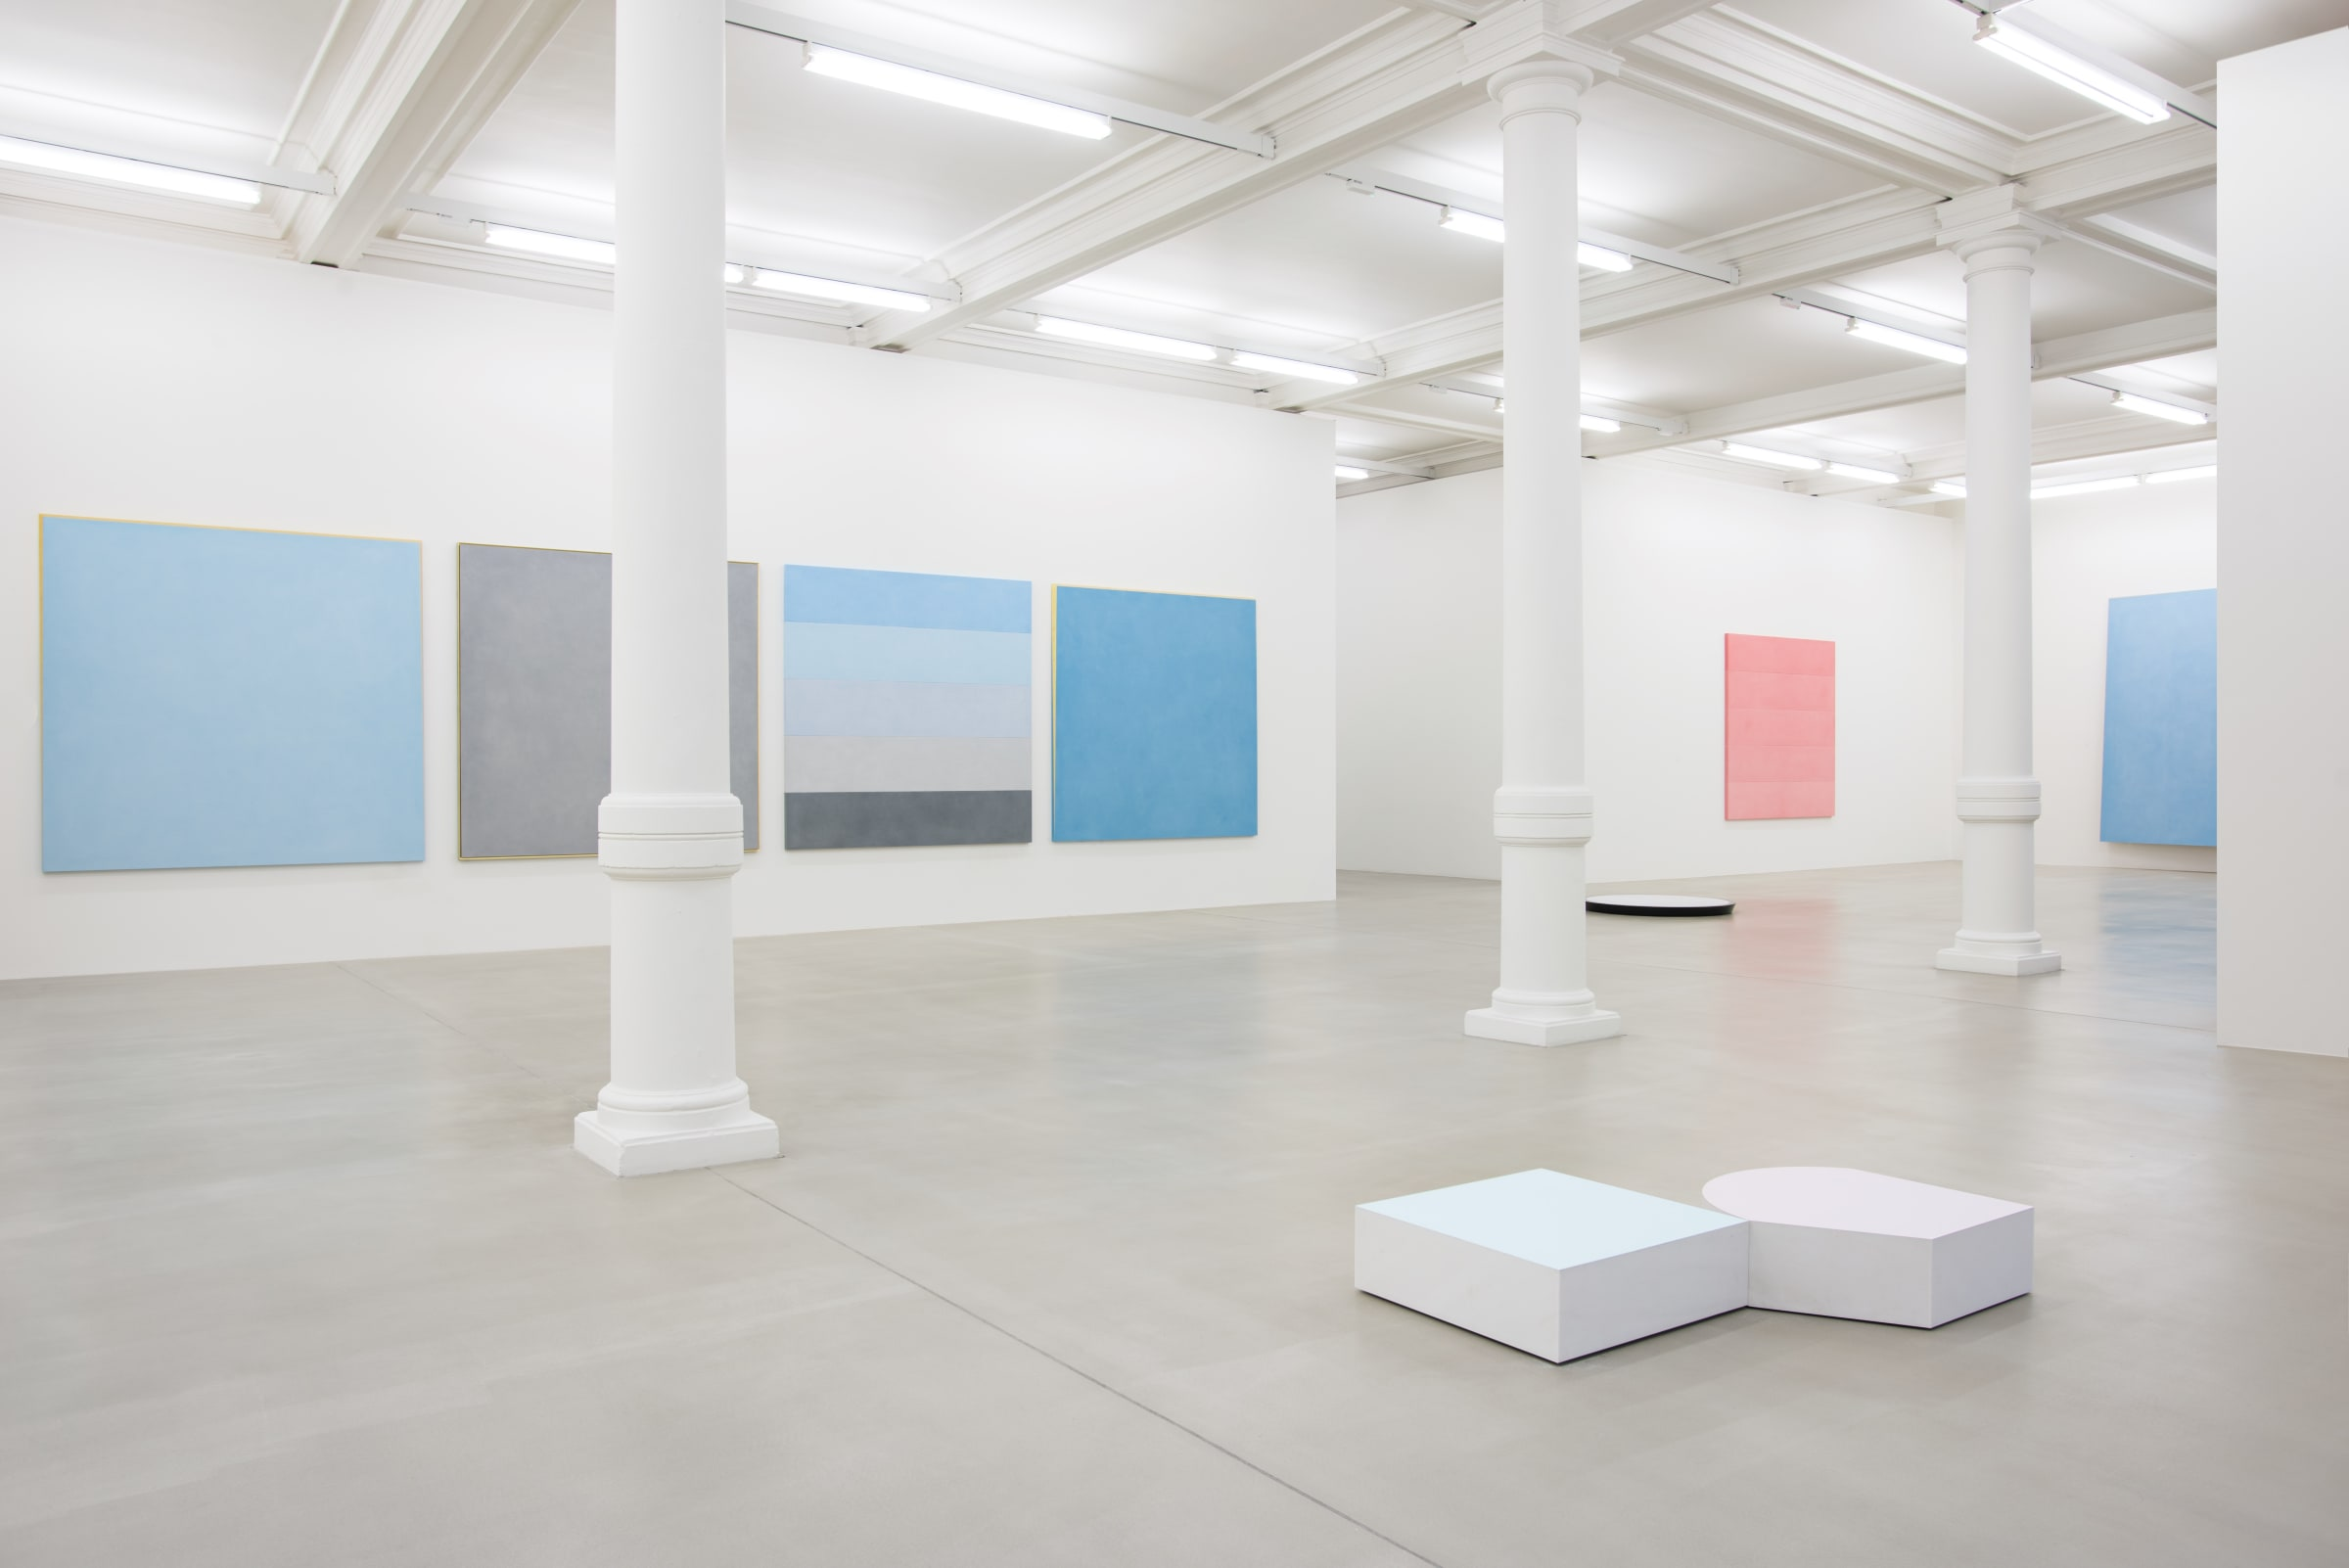 Various paintings of light shades (blue, grey, pink) line the walls of an all white space, with short white sculptures on the floor.